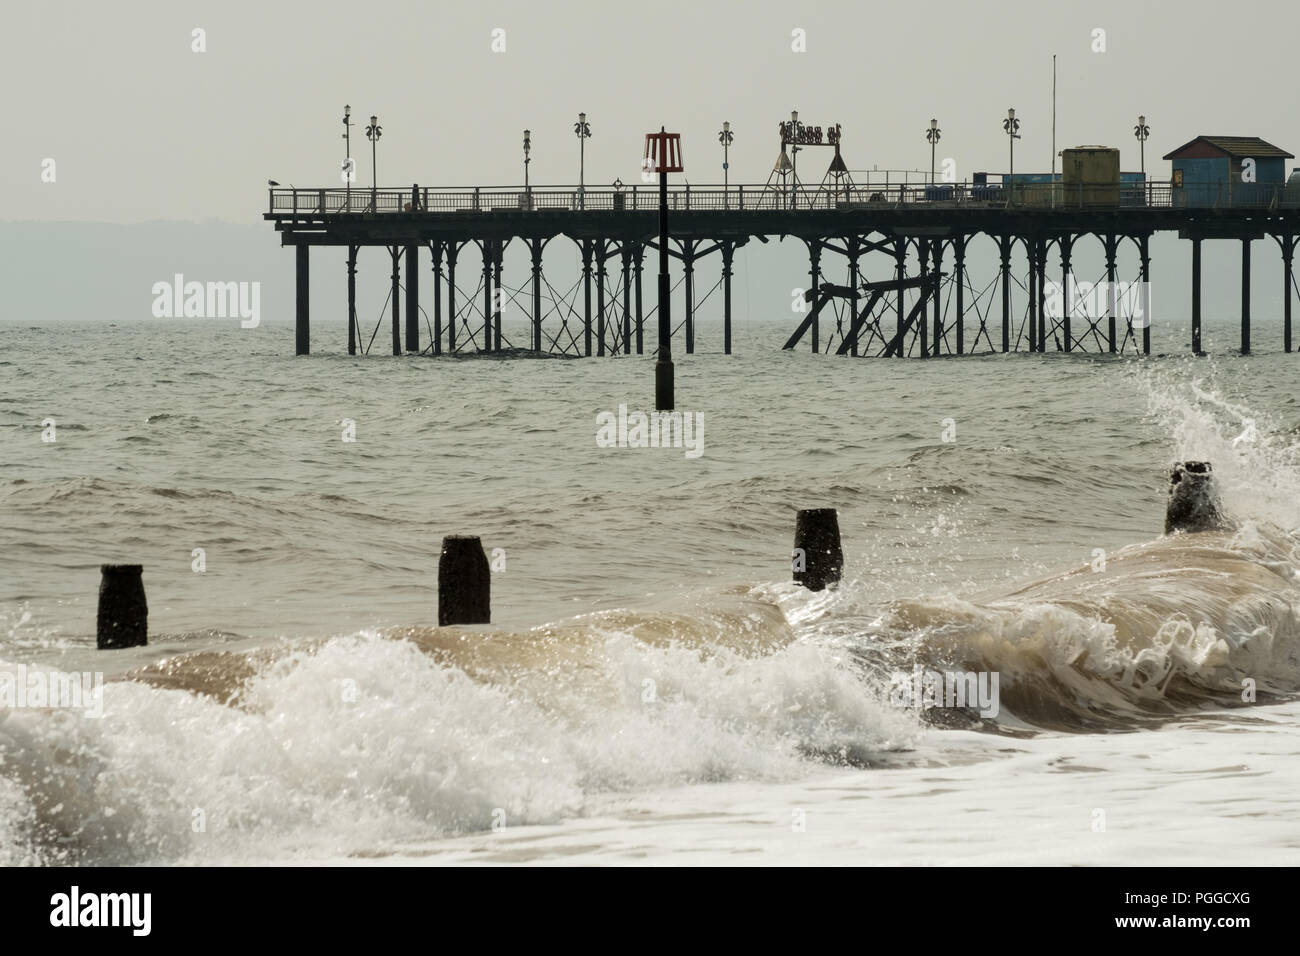 Teignmouth Grand Pier during winter gales on the beach, Devon, England, UK. Stock Photo